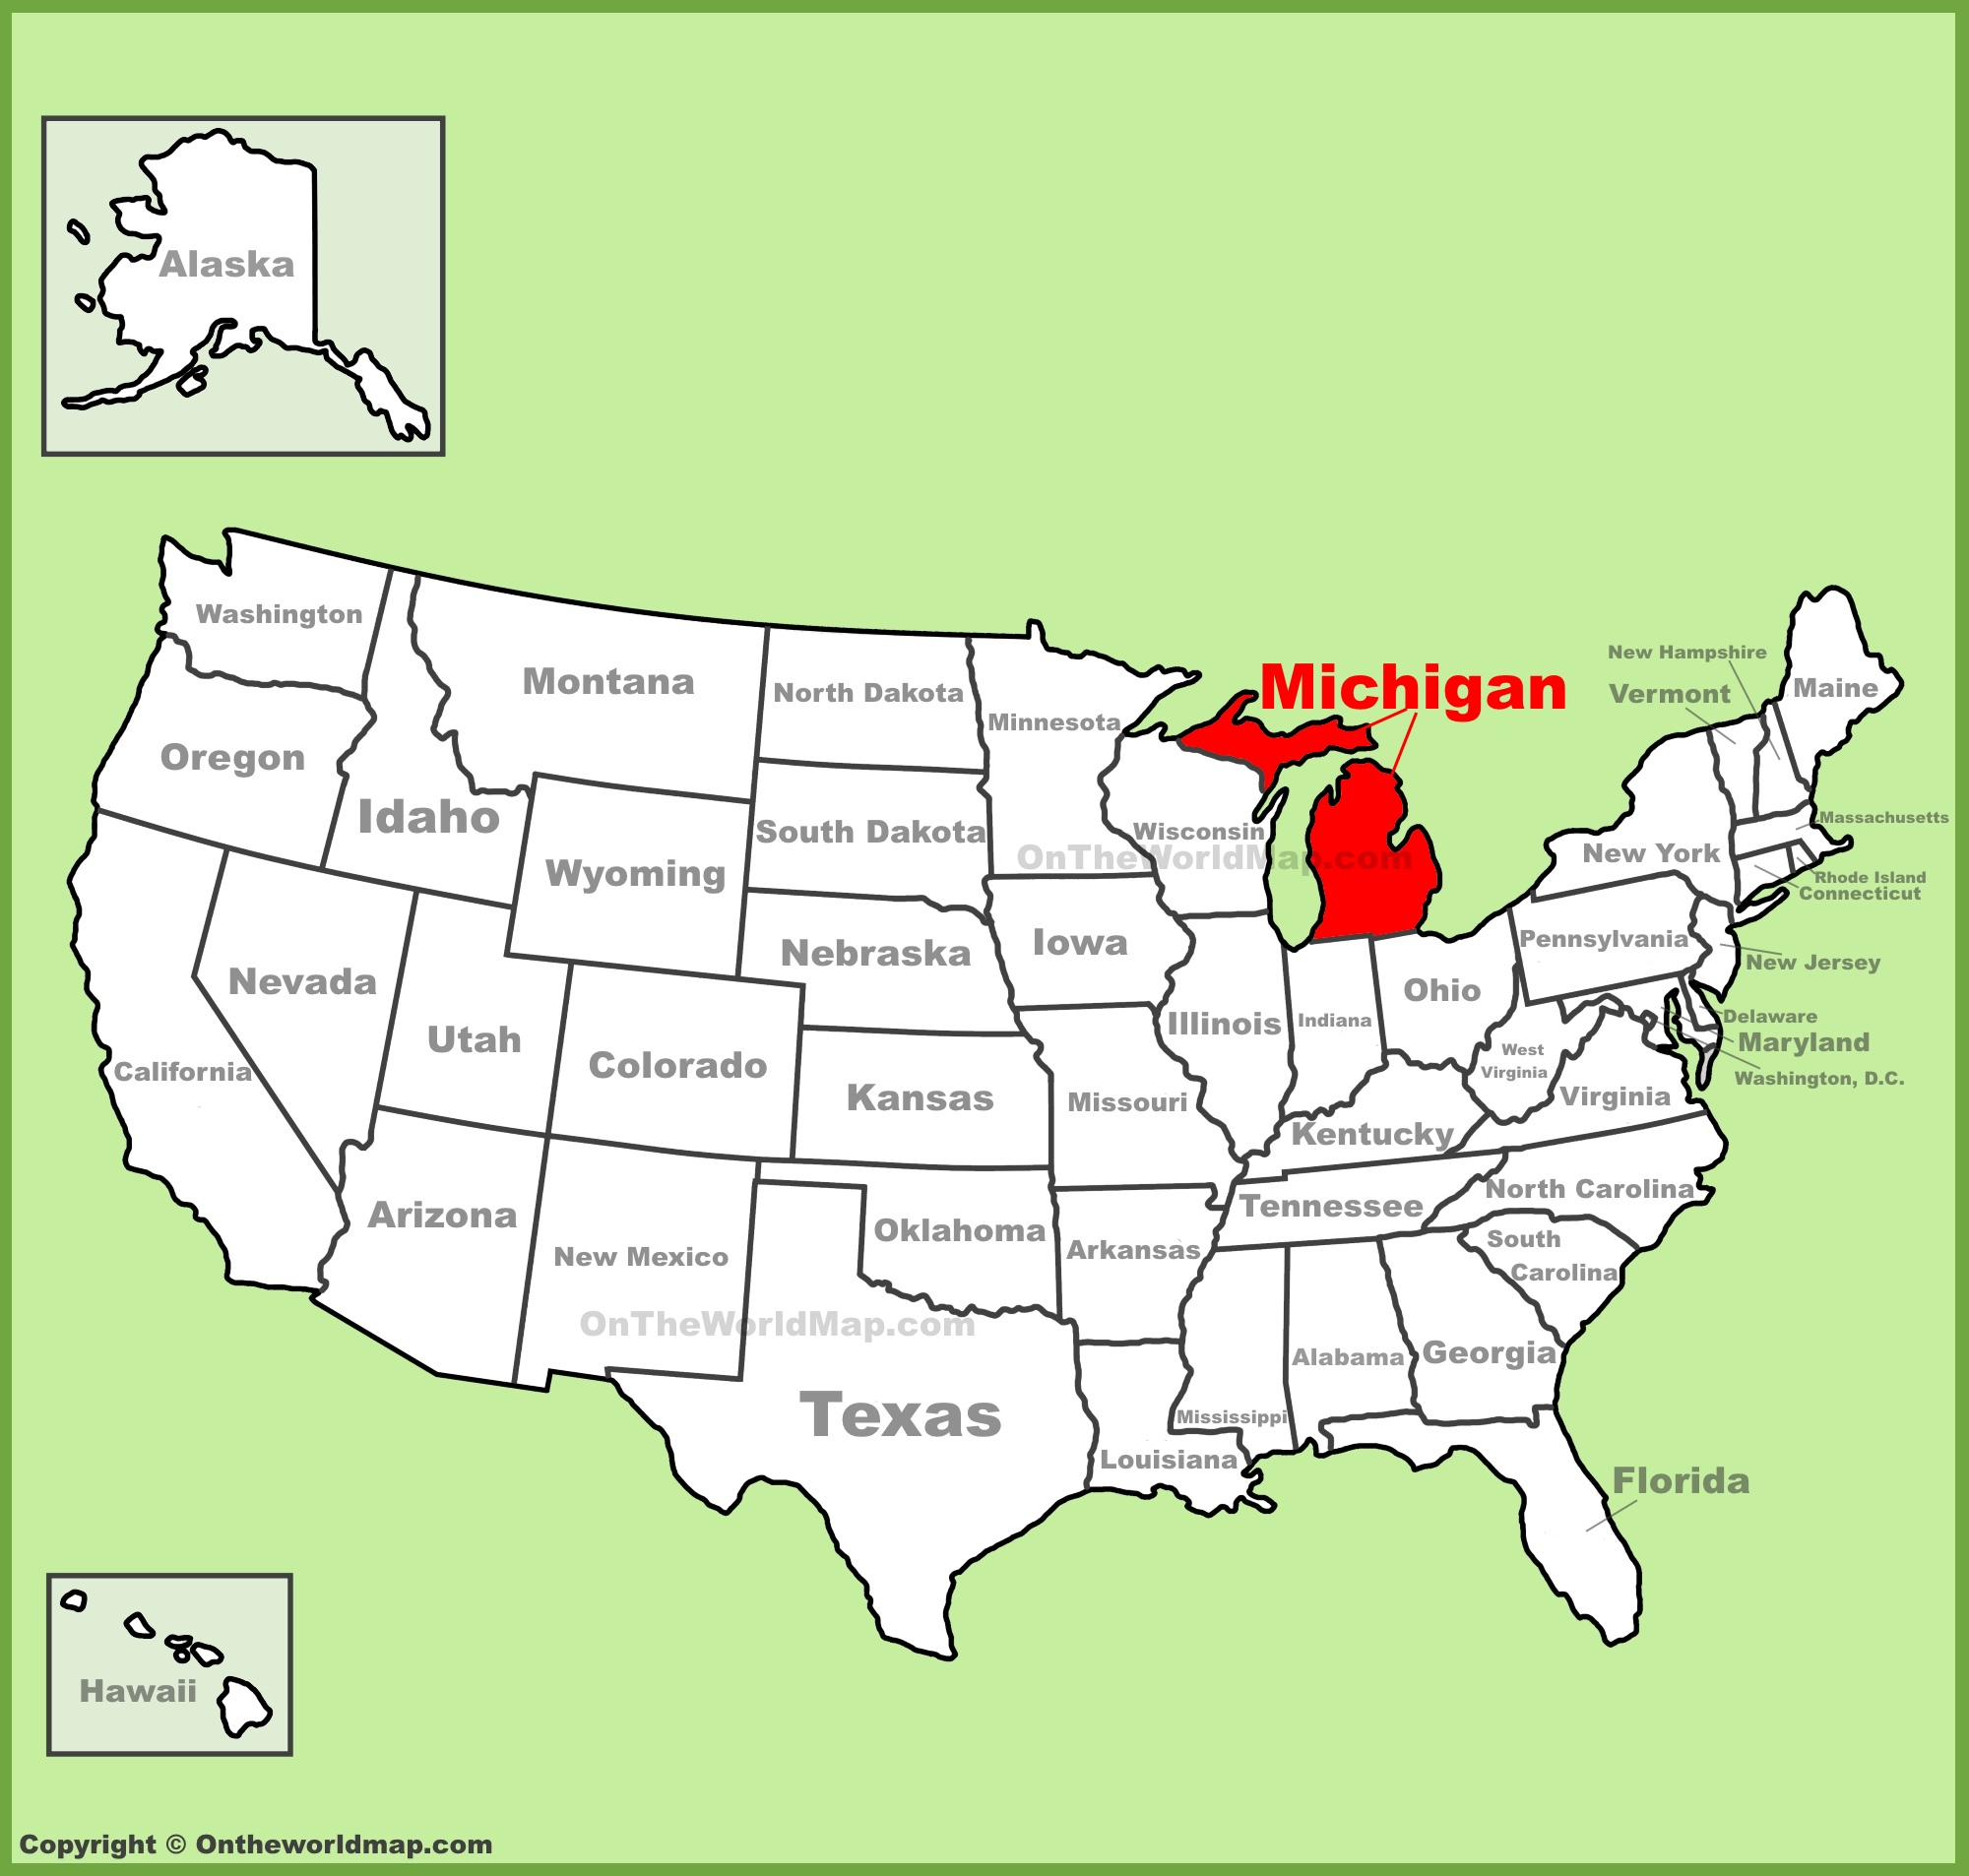 Michigan State Maps USA Maps Of Michigan MI - Us map michigan